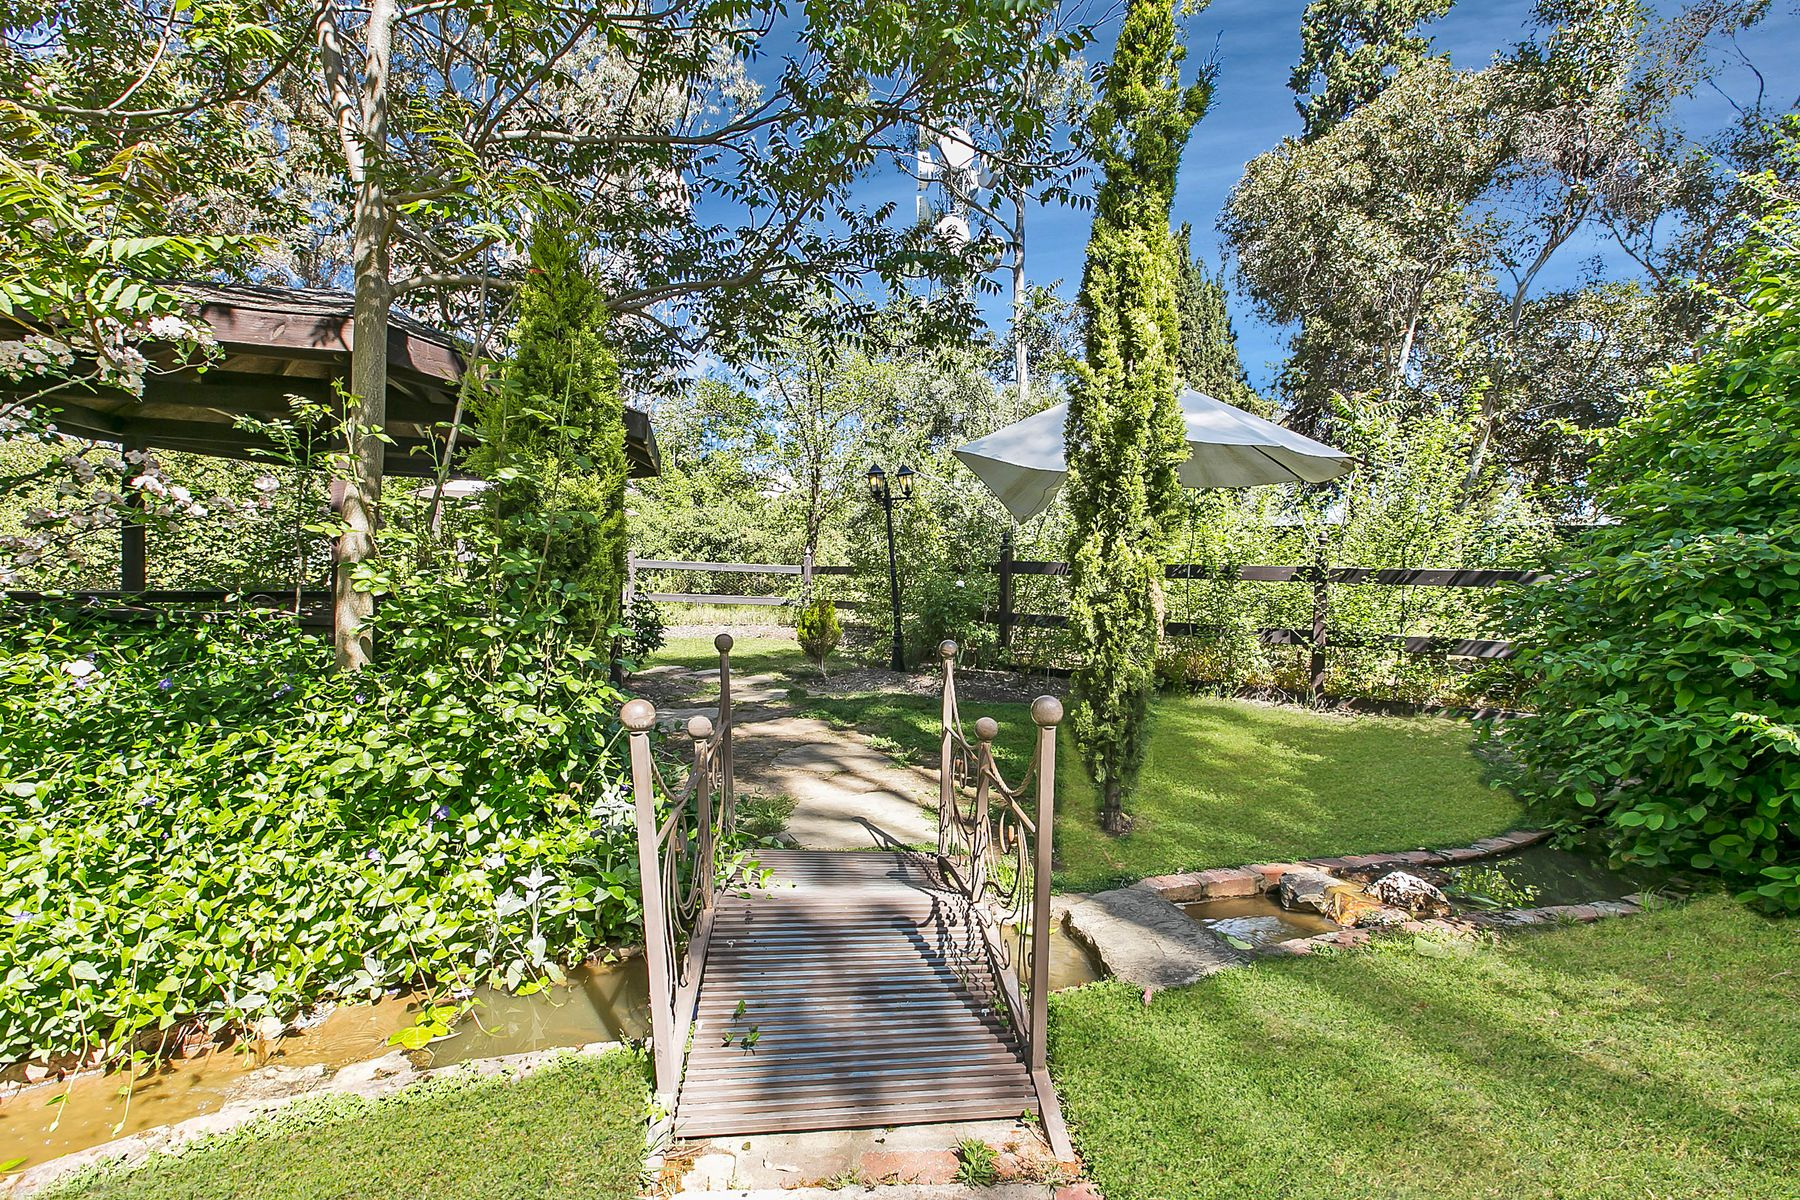 McKean McGregor :: 49-57 Marong Road, Bendigo, VIC 3550